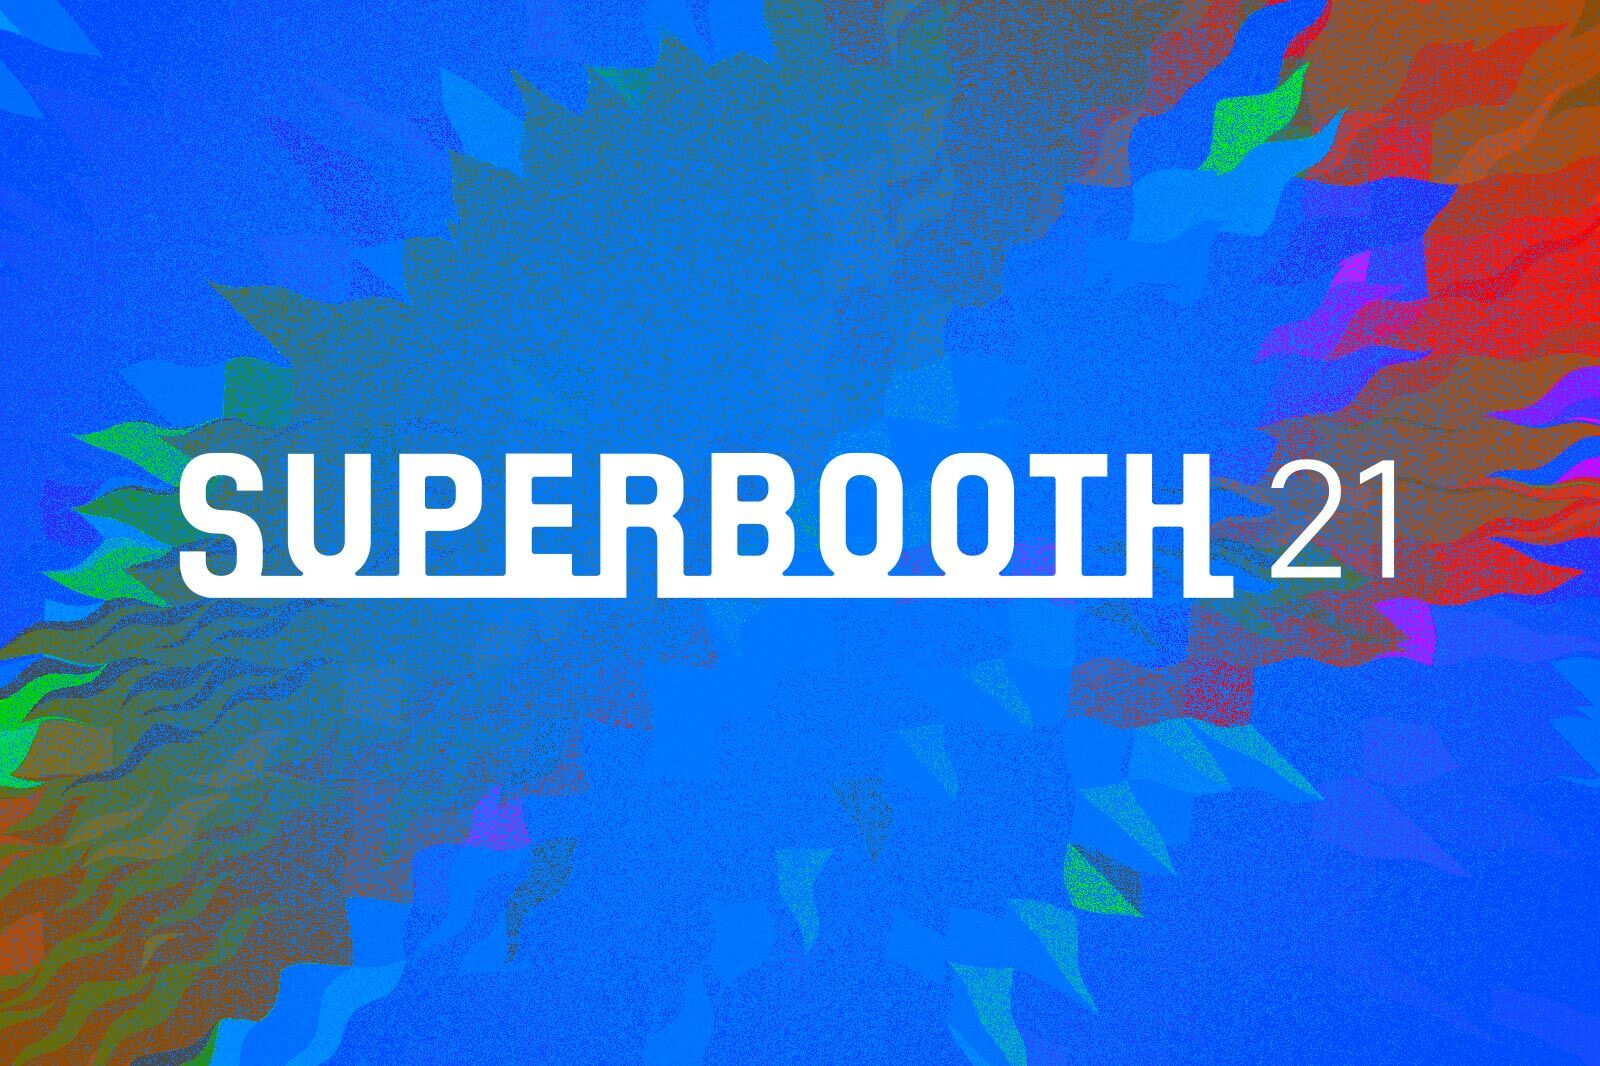 Superbooth 2021 Coverage